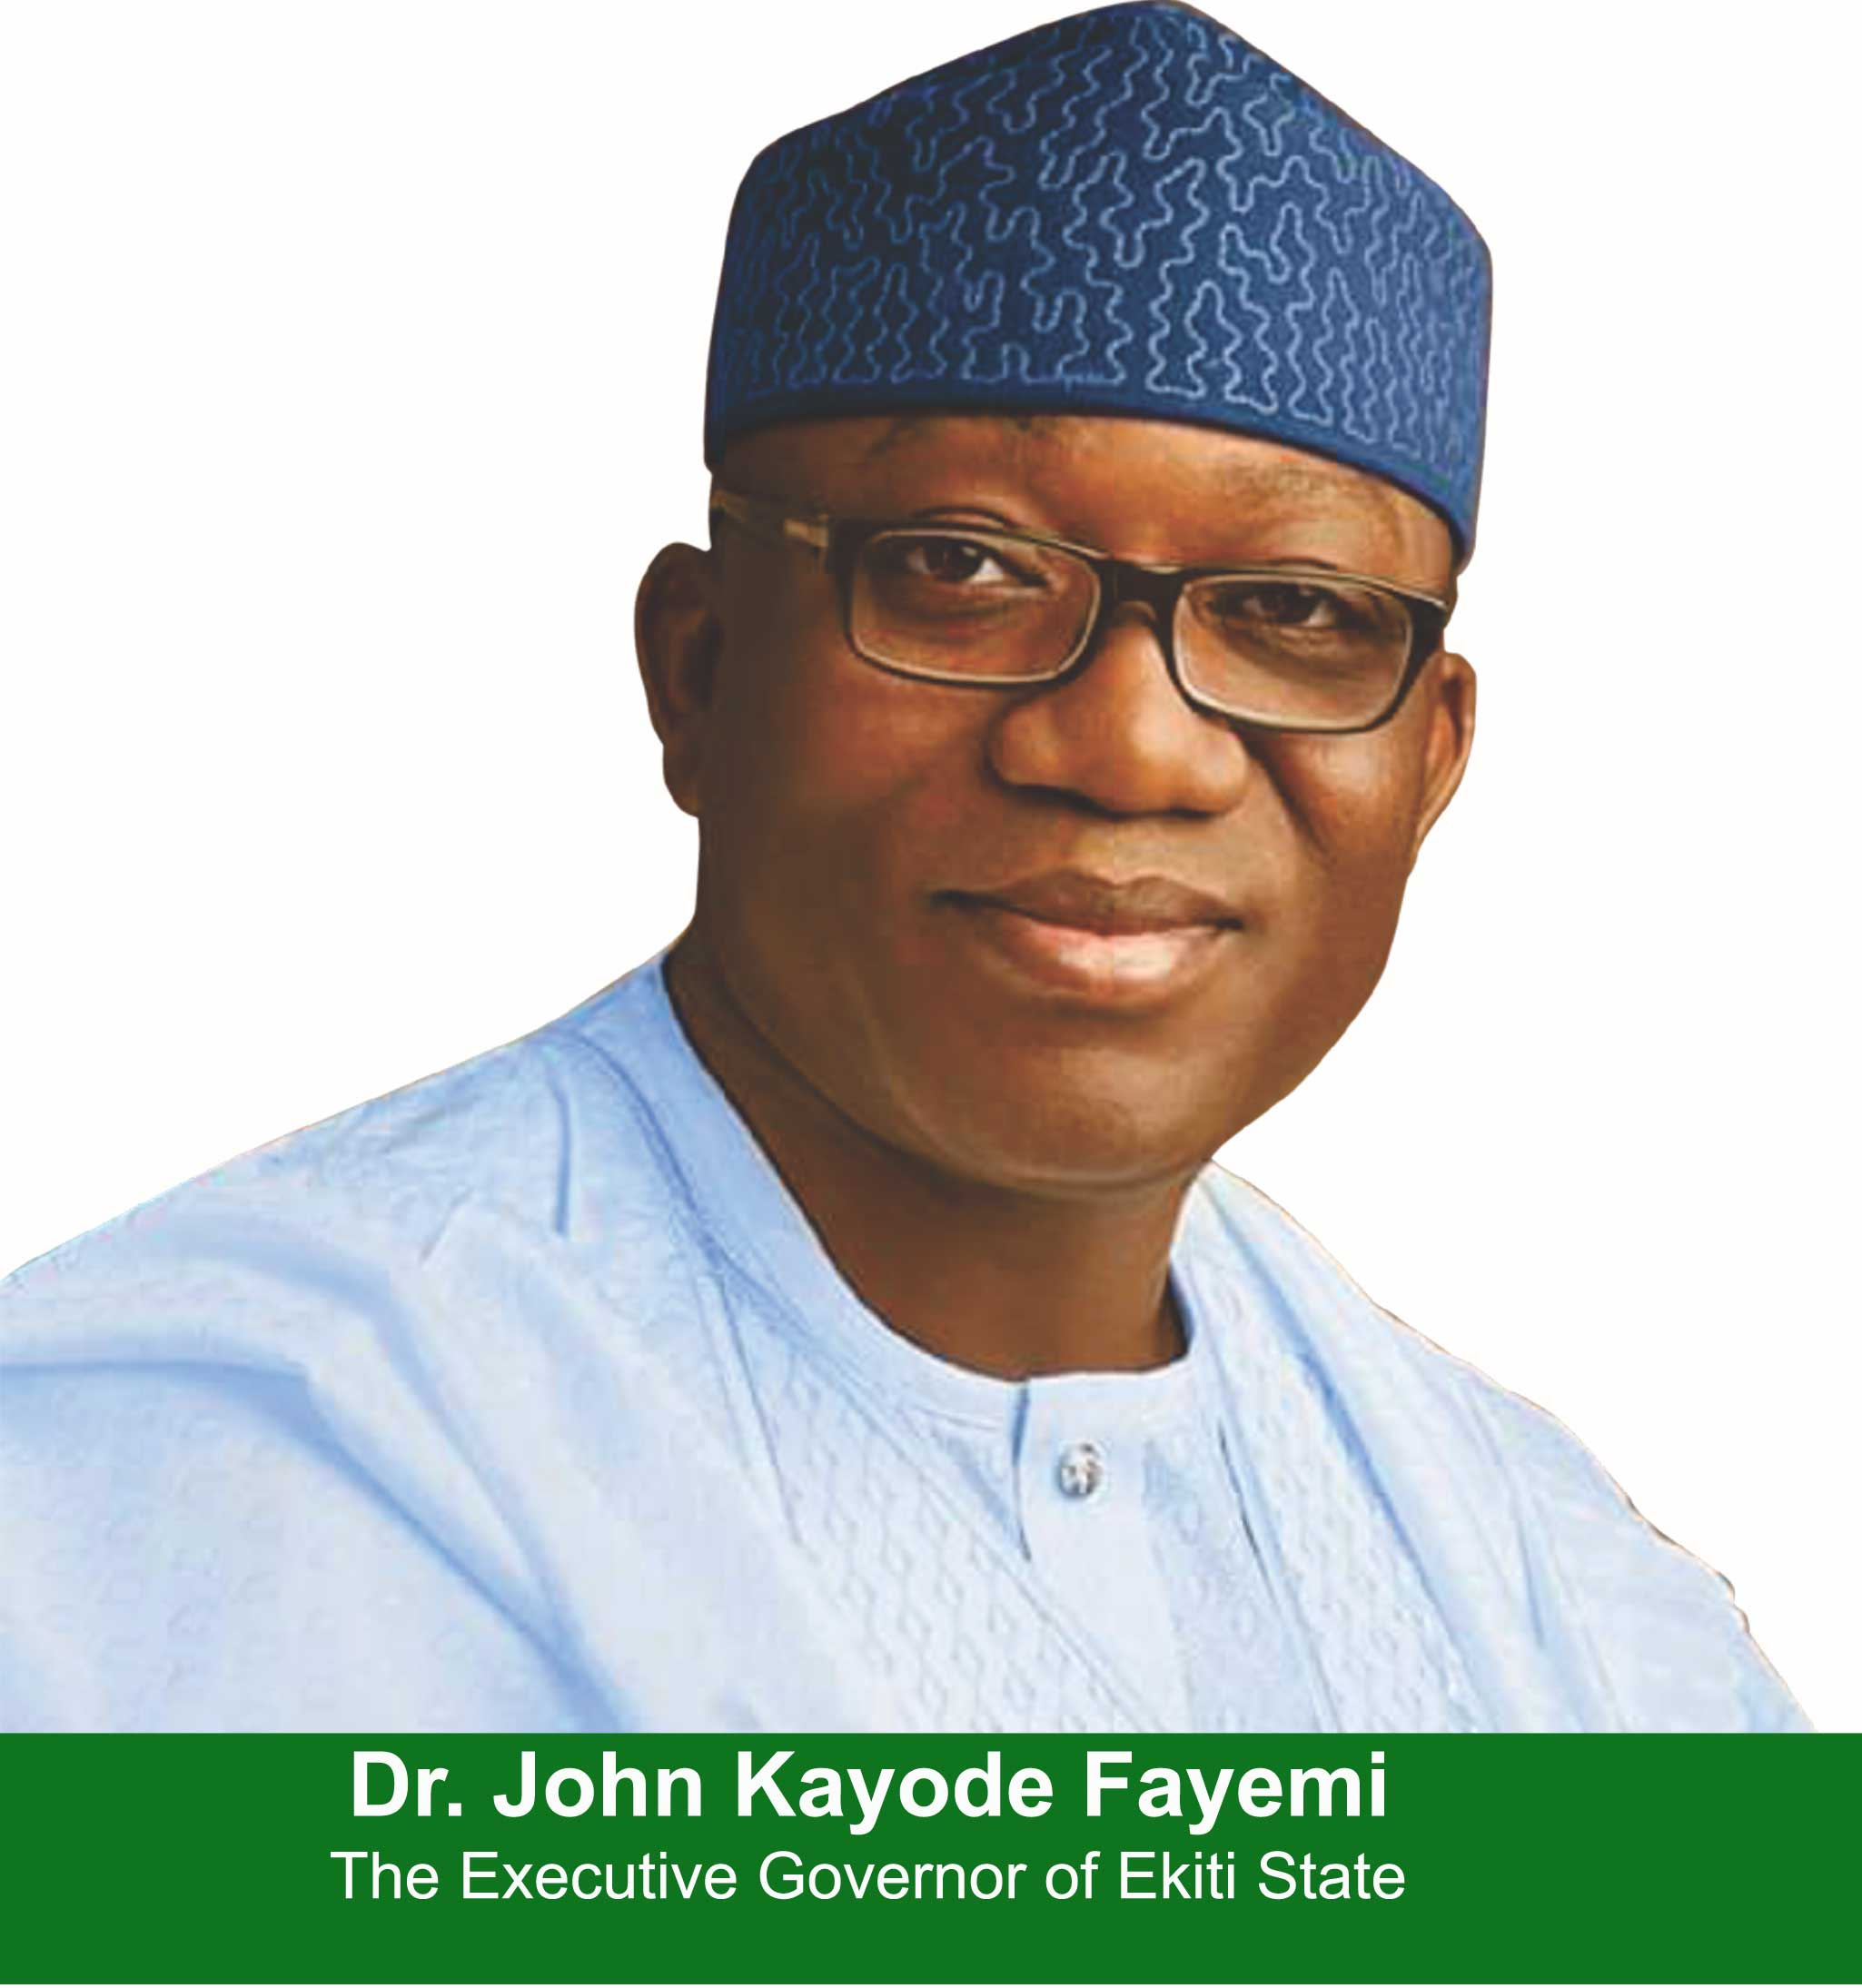 Fayemi,governor fayemi,Ekiti Governor Fayemi suspends school Principal who failed to welcome him when he visited,Ekiti State news,Kayode Fayemi principal